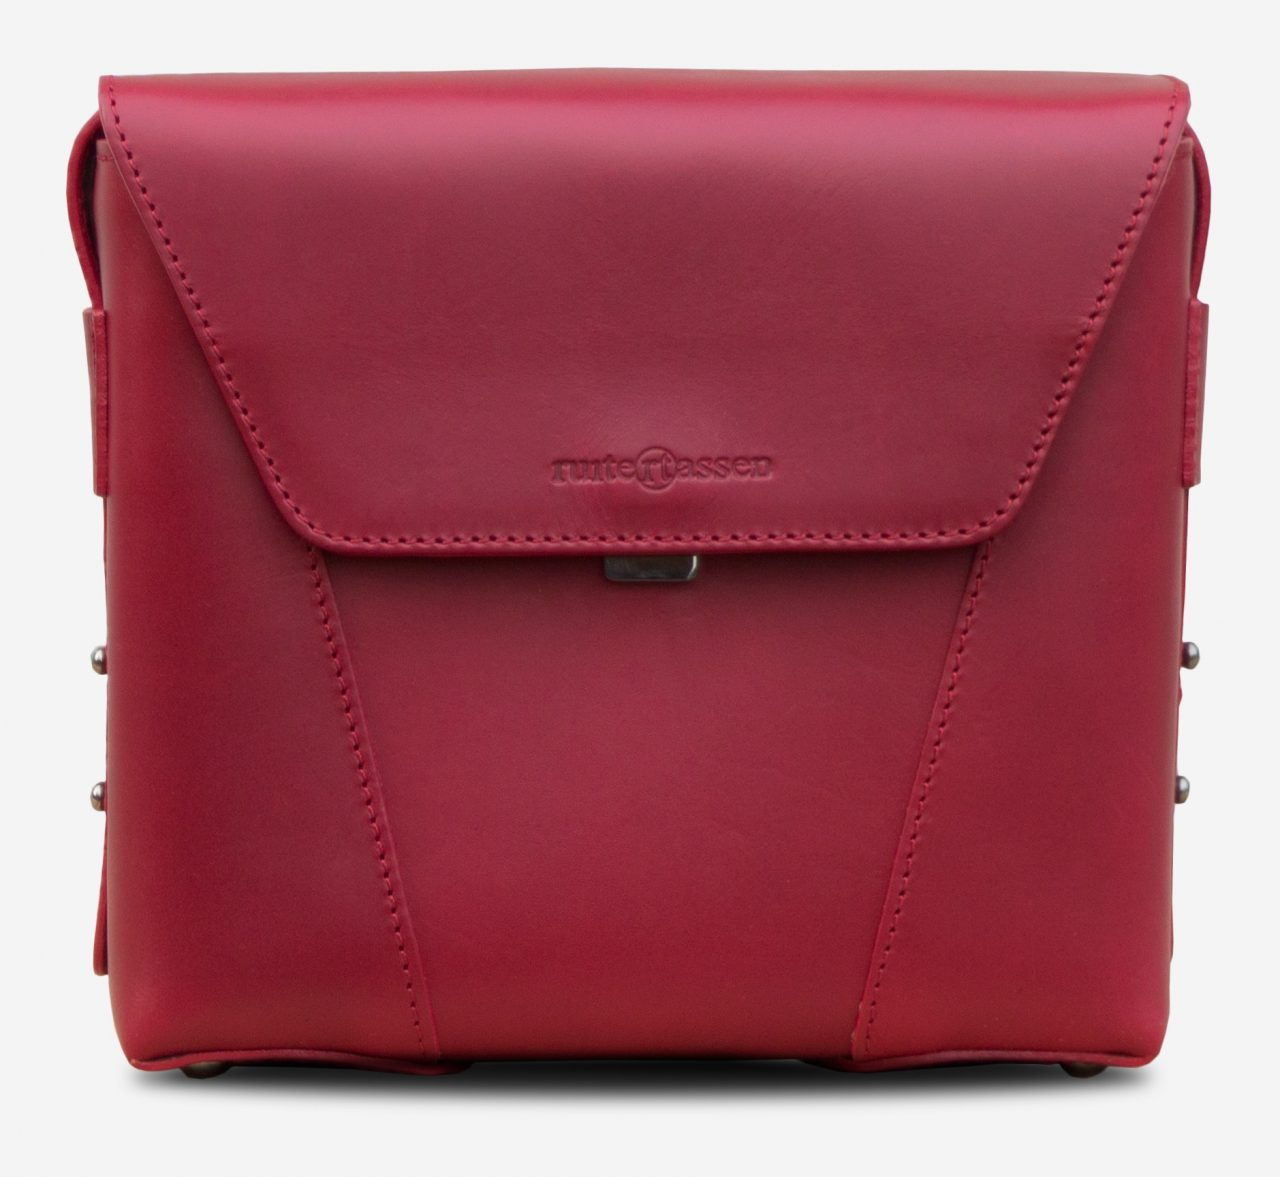 Front view of the small red vegetable-tanned leather crossbody bag for women.